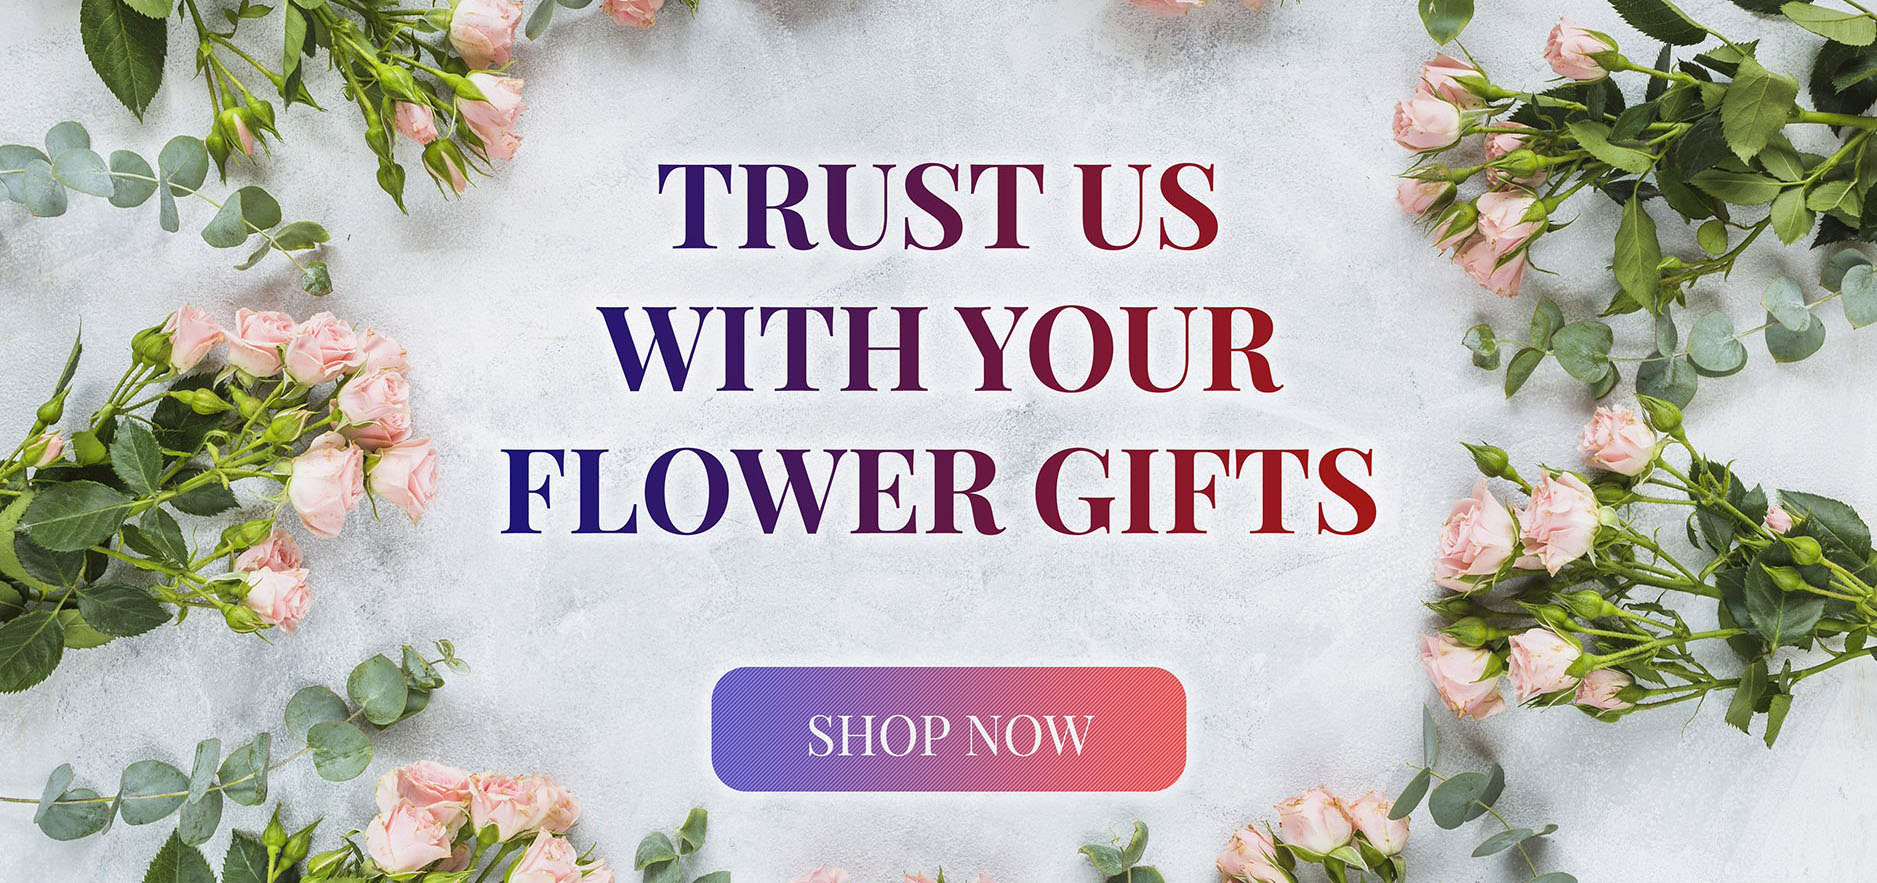 flower delivery dubai header web - A Home Page